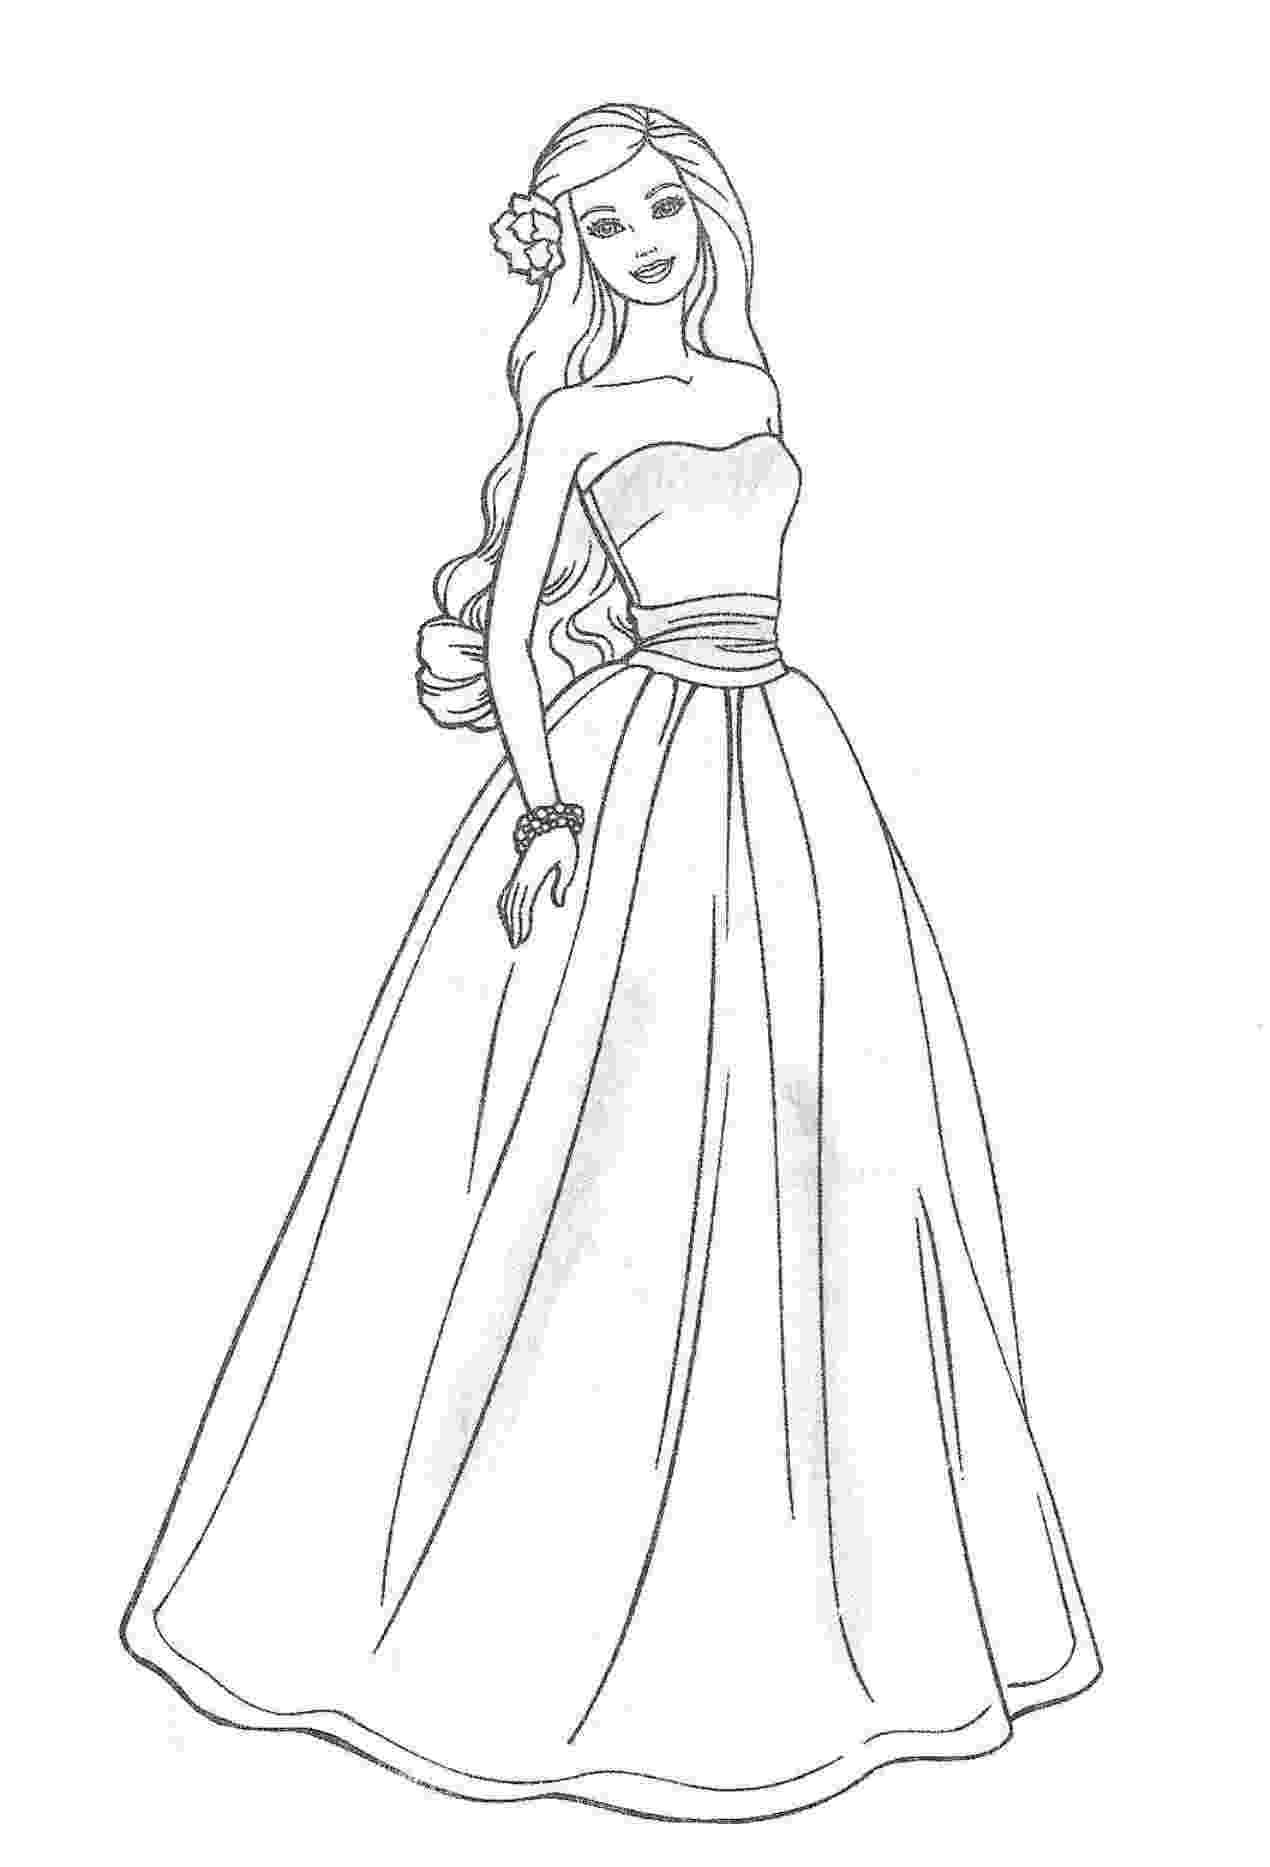 barbie doll pictures to color coloring pages barbie free printable coloring pages barbie color to pictures doll